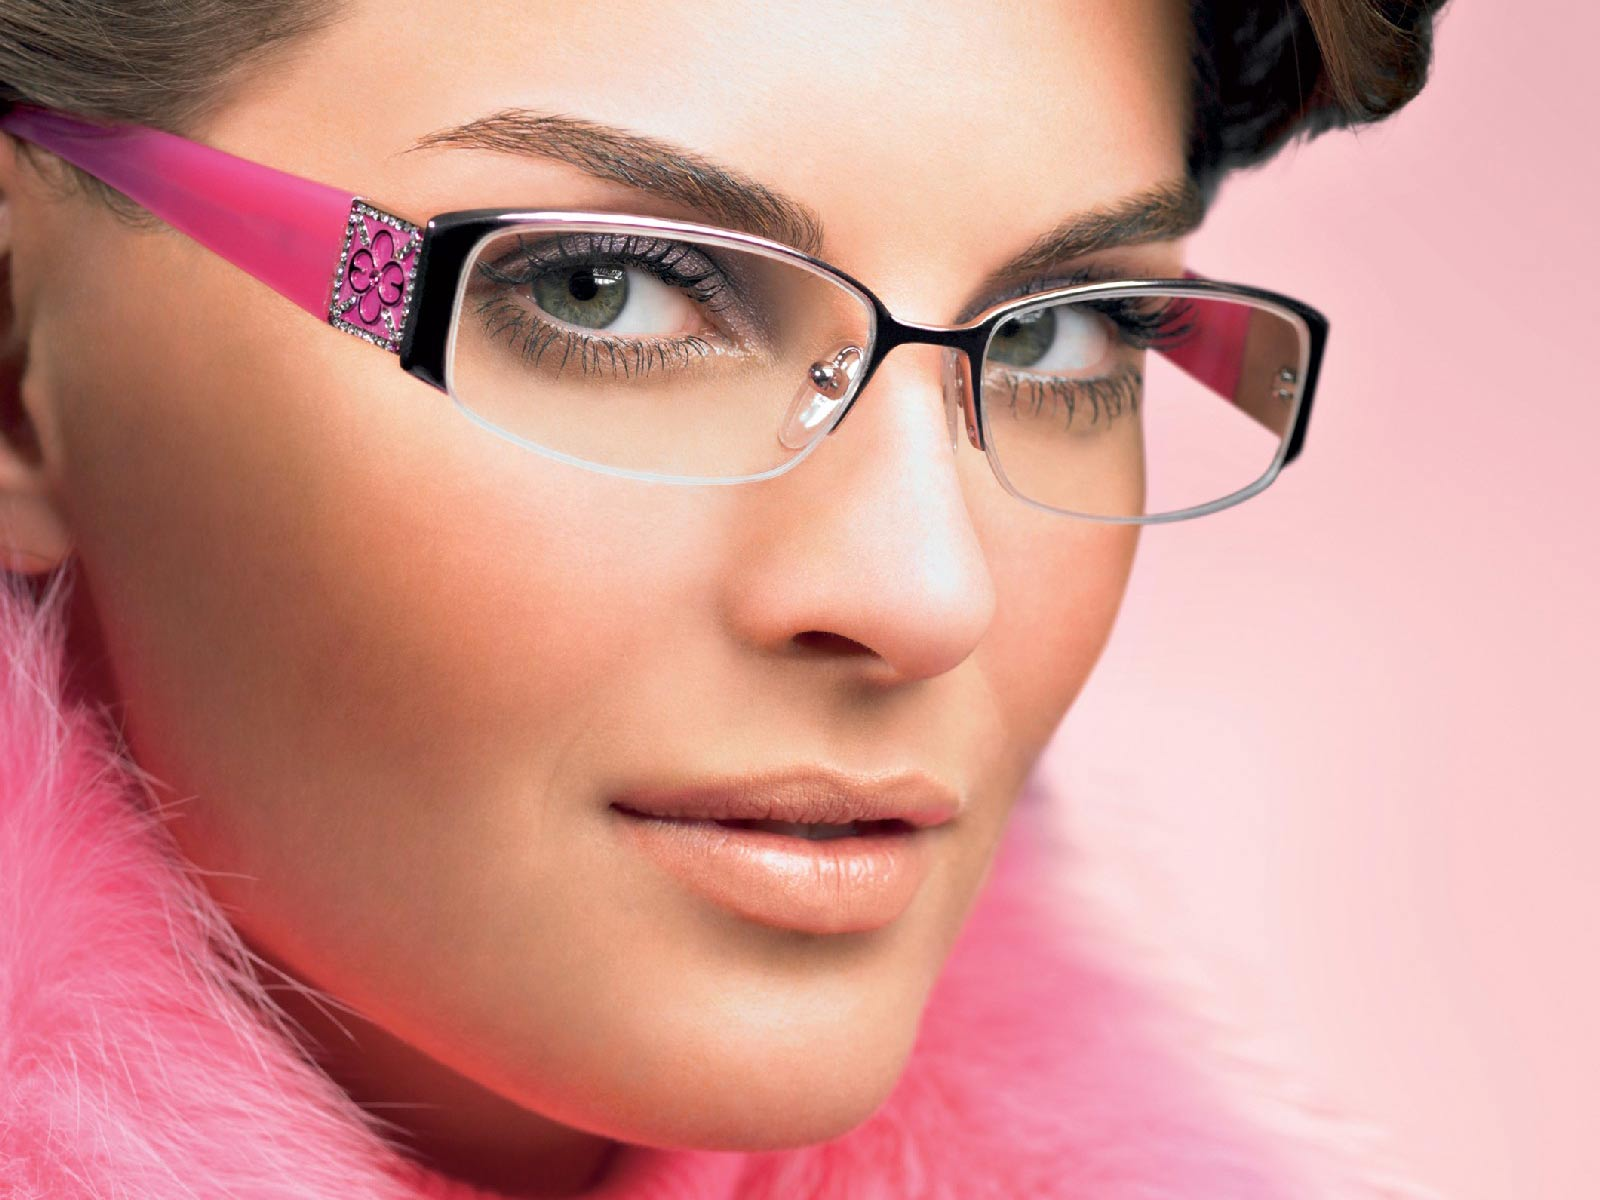 17 best images about eye glass on pinterest ralph lauren for women and gianni versace